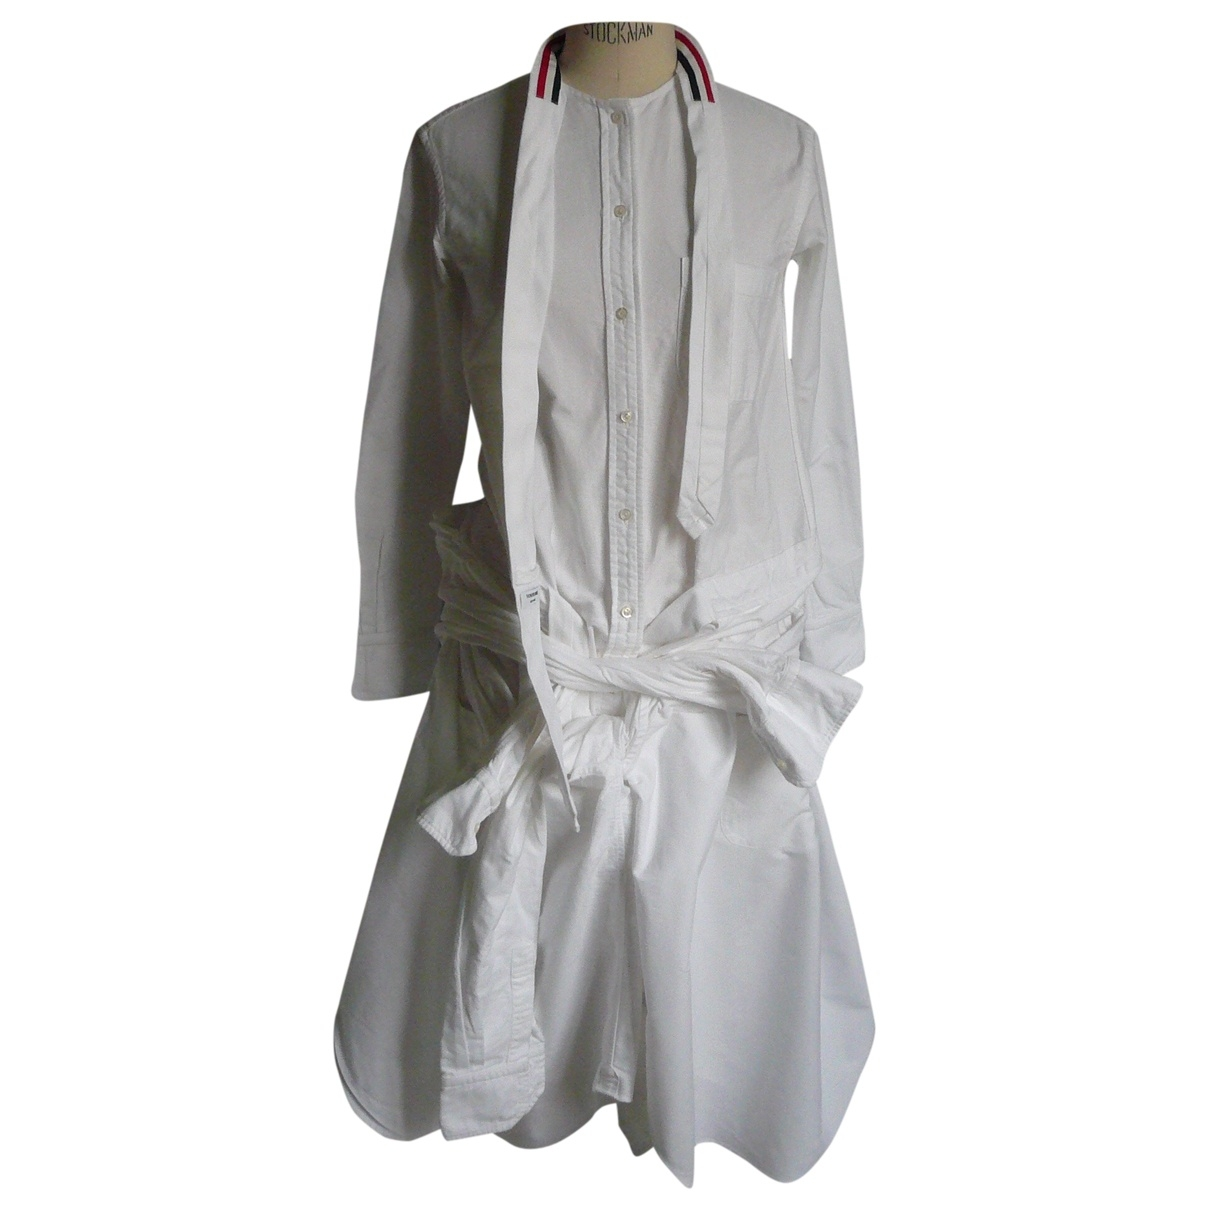 Thom Browne \N White Cotton dress for Women 38 FR